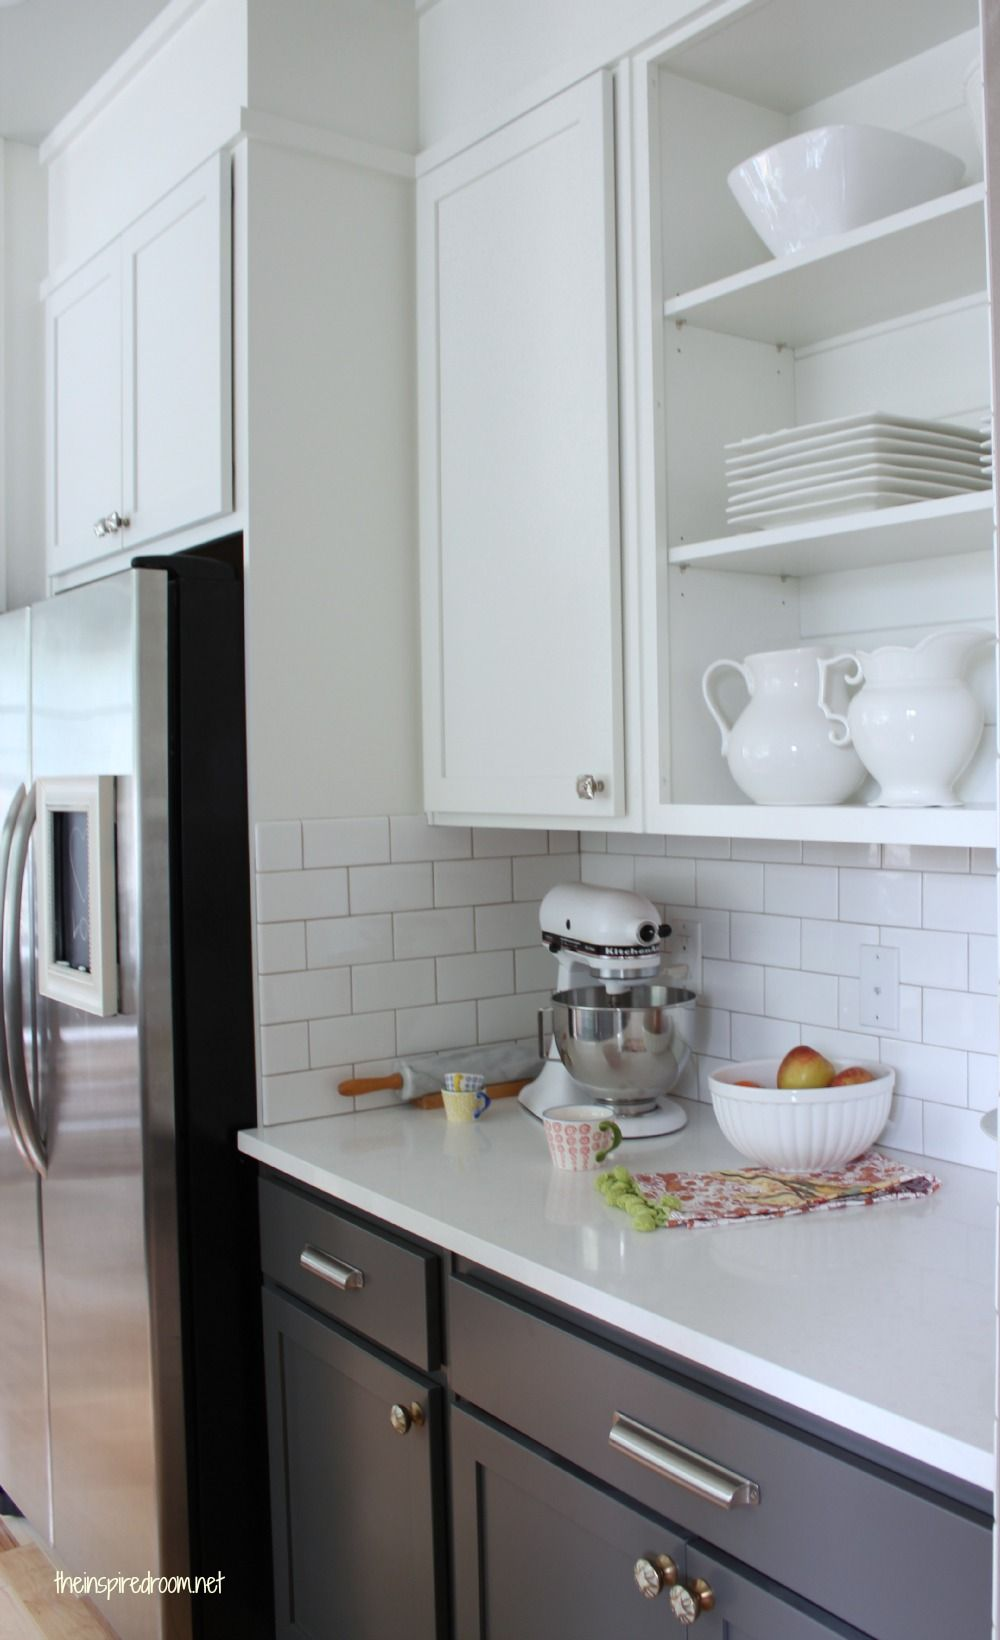 Painting Ikea Kitchen Doors Favorite Antique White Paint Subway Tile Backsplash Cabinets